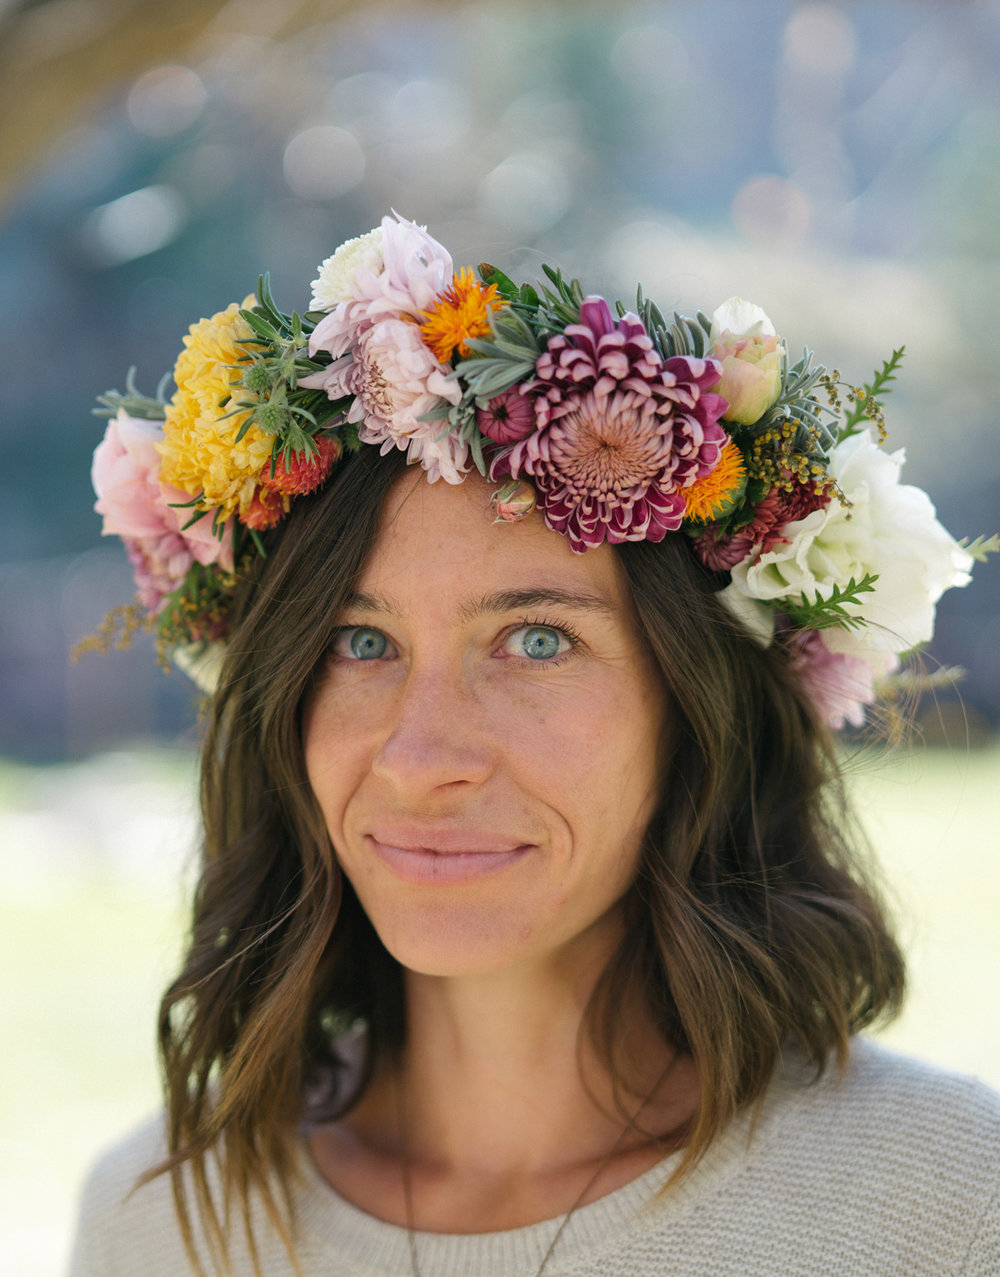 Field notes farmette flowers a really fun flower crown i got to make in october with all those mums izmirmasajfo